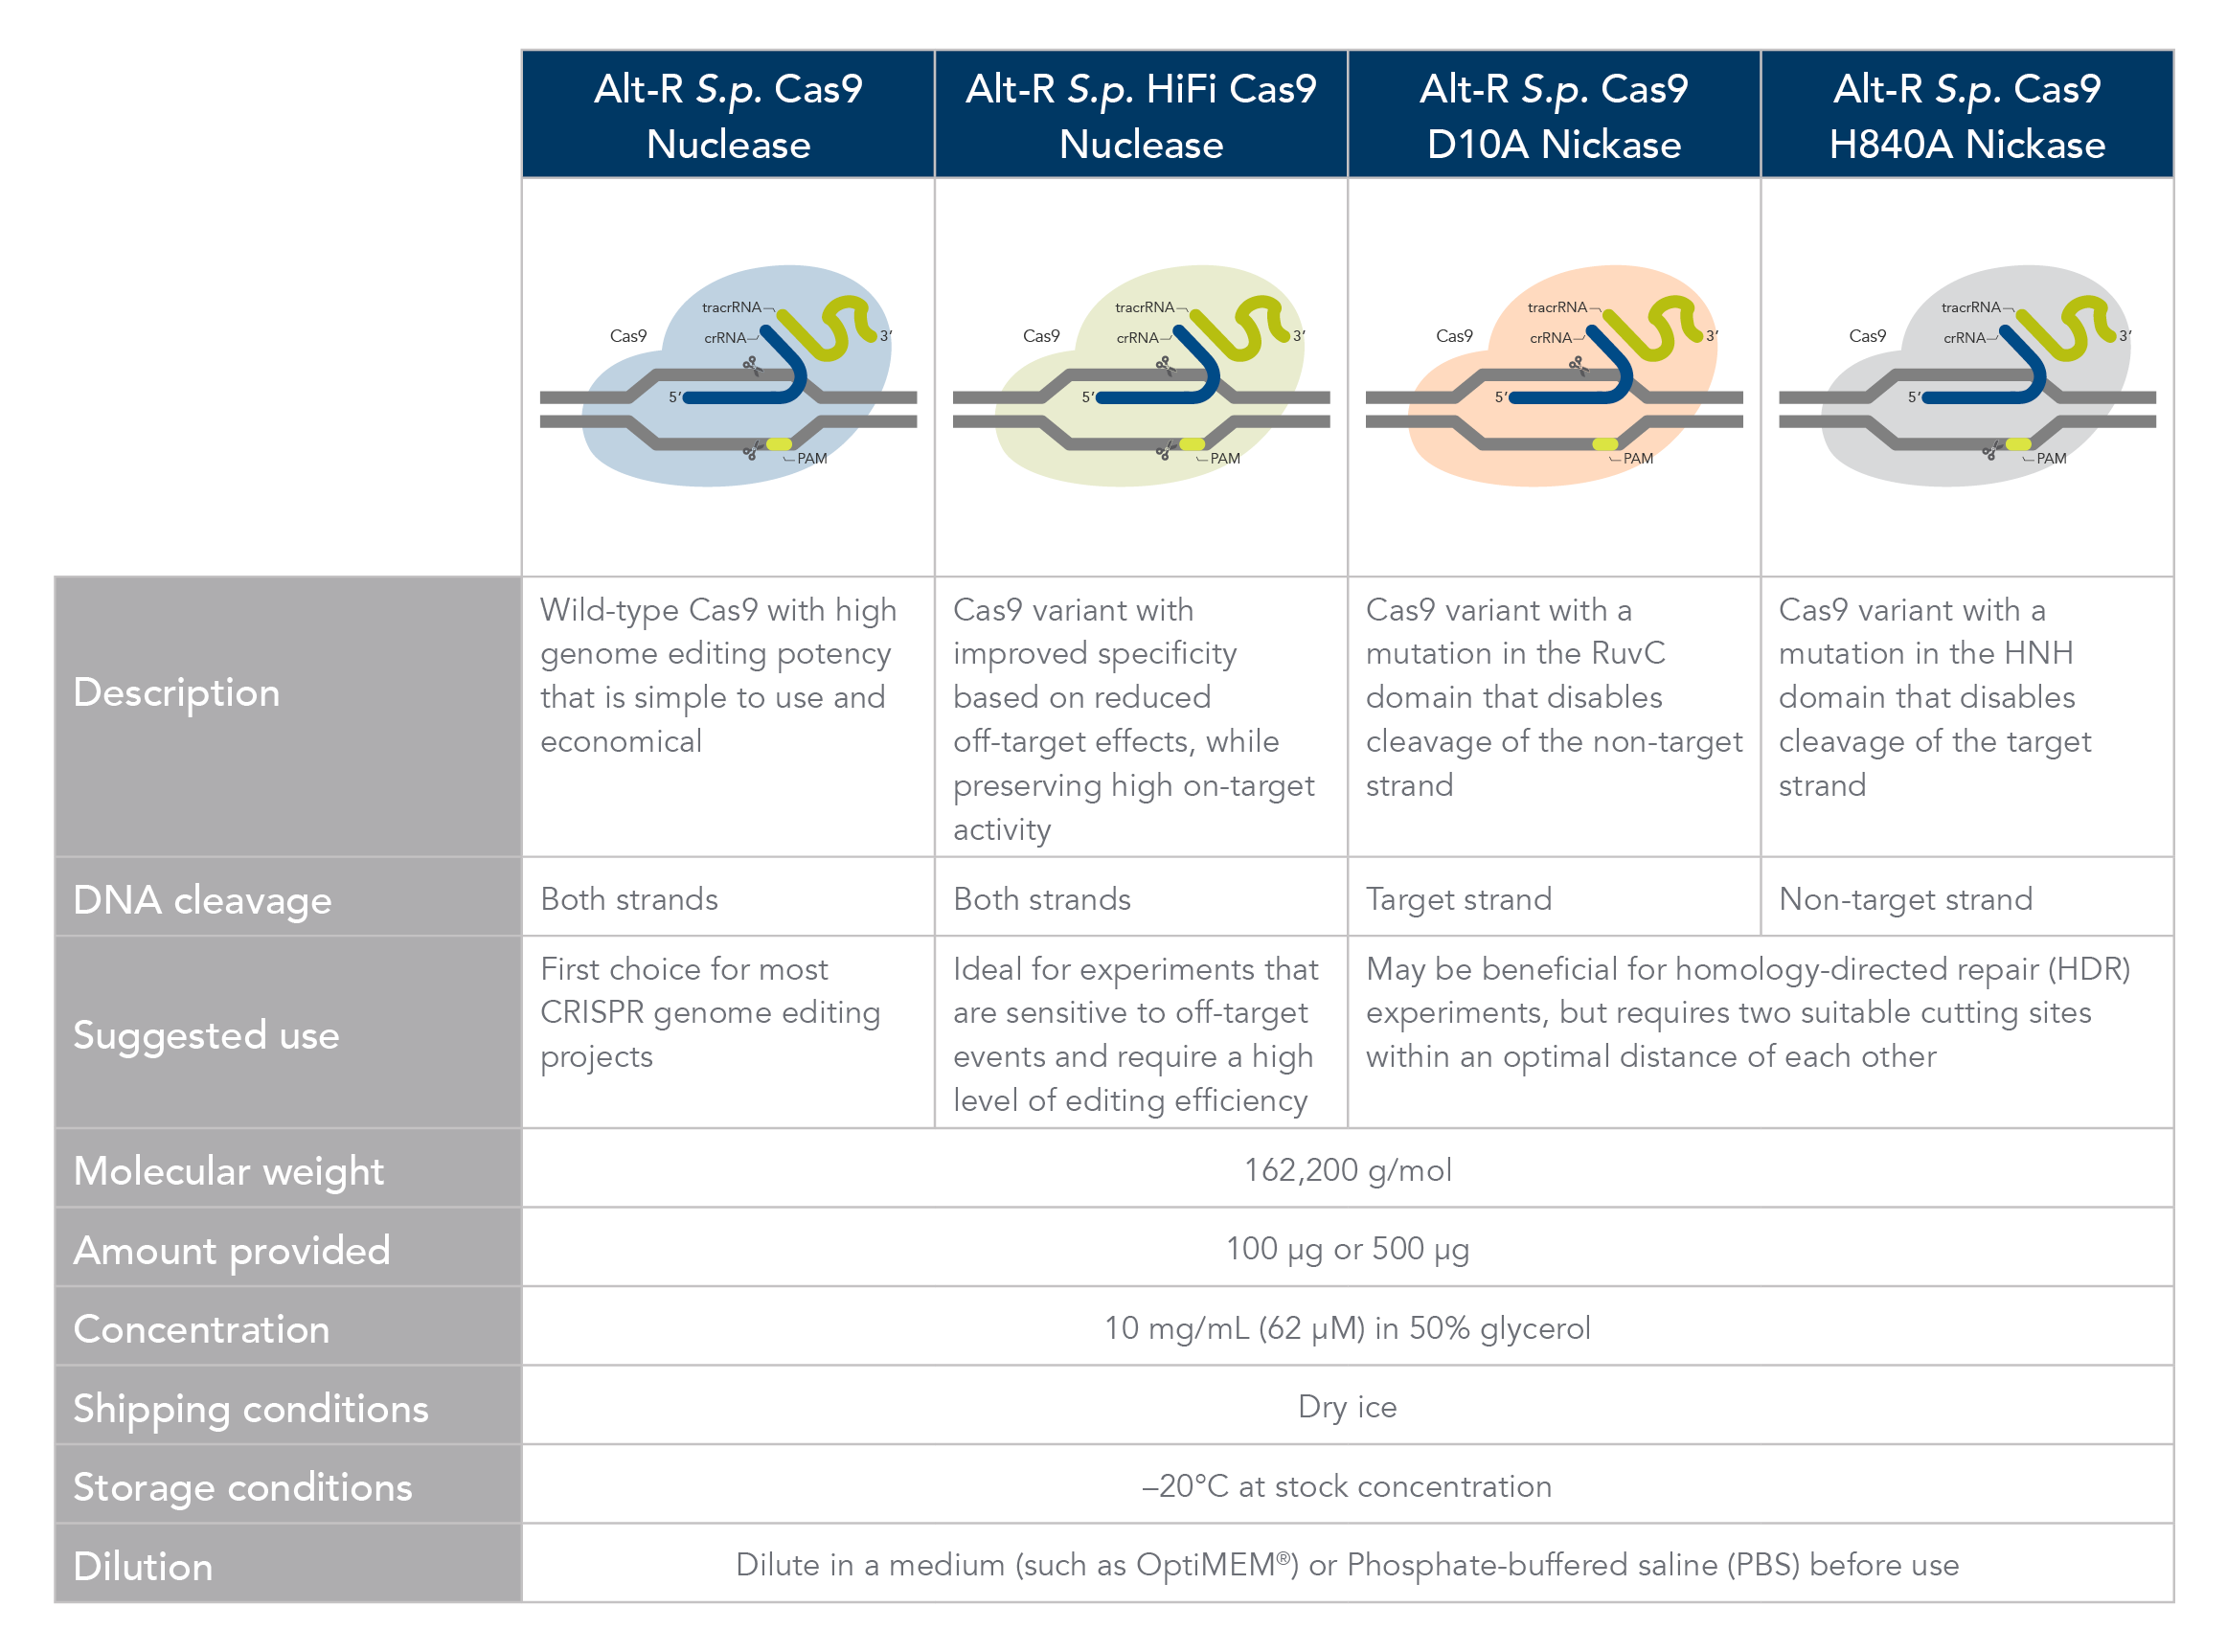 cas9-nuclease-nickase-comparison-table-flyer